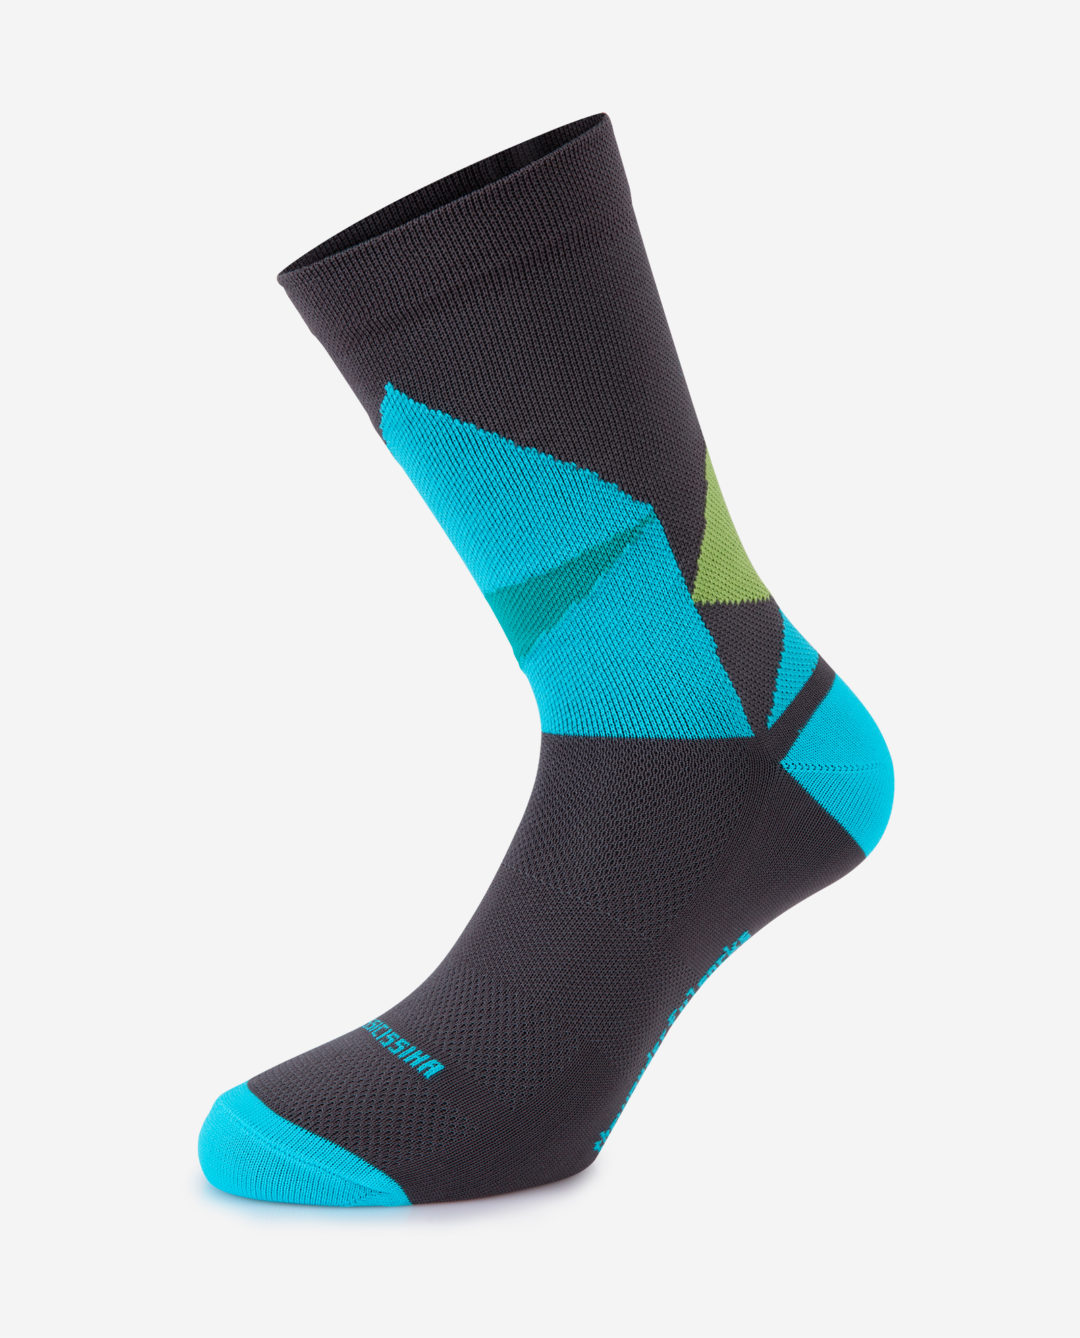 la-classicissima-cycling-socks-sx-the wonderful socks